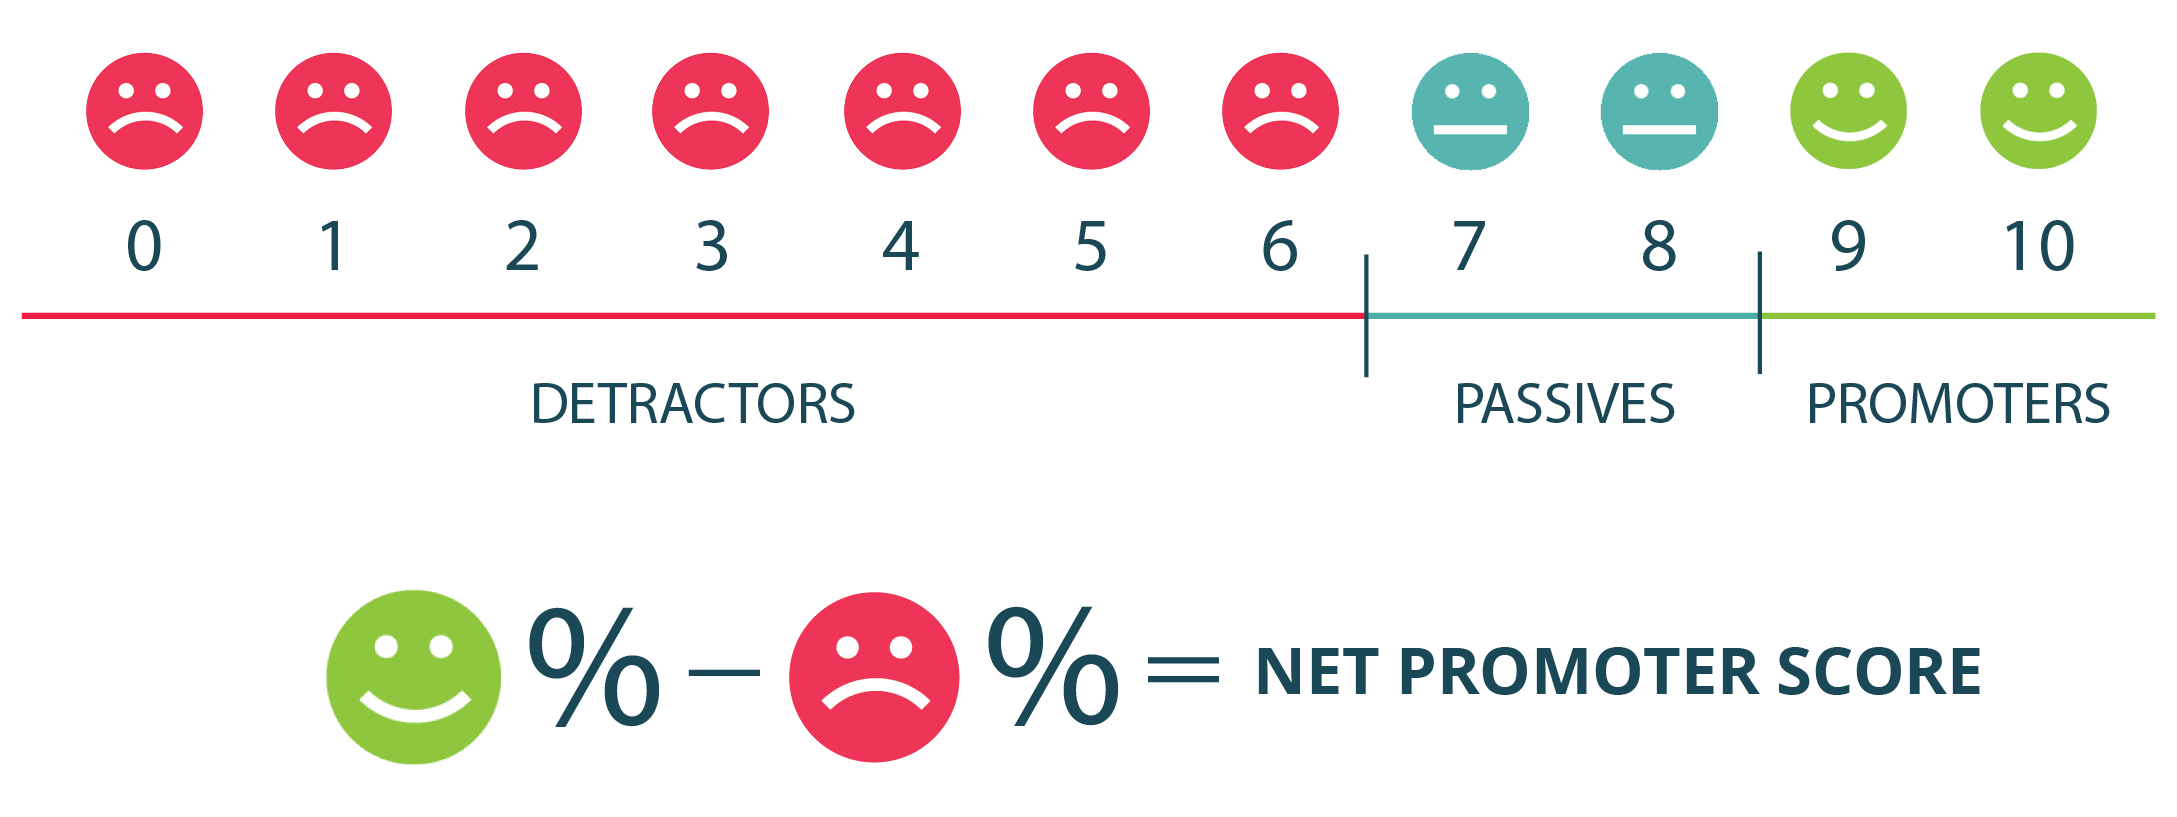 How Net Promoter Score is calculated